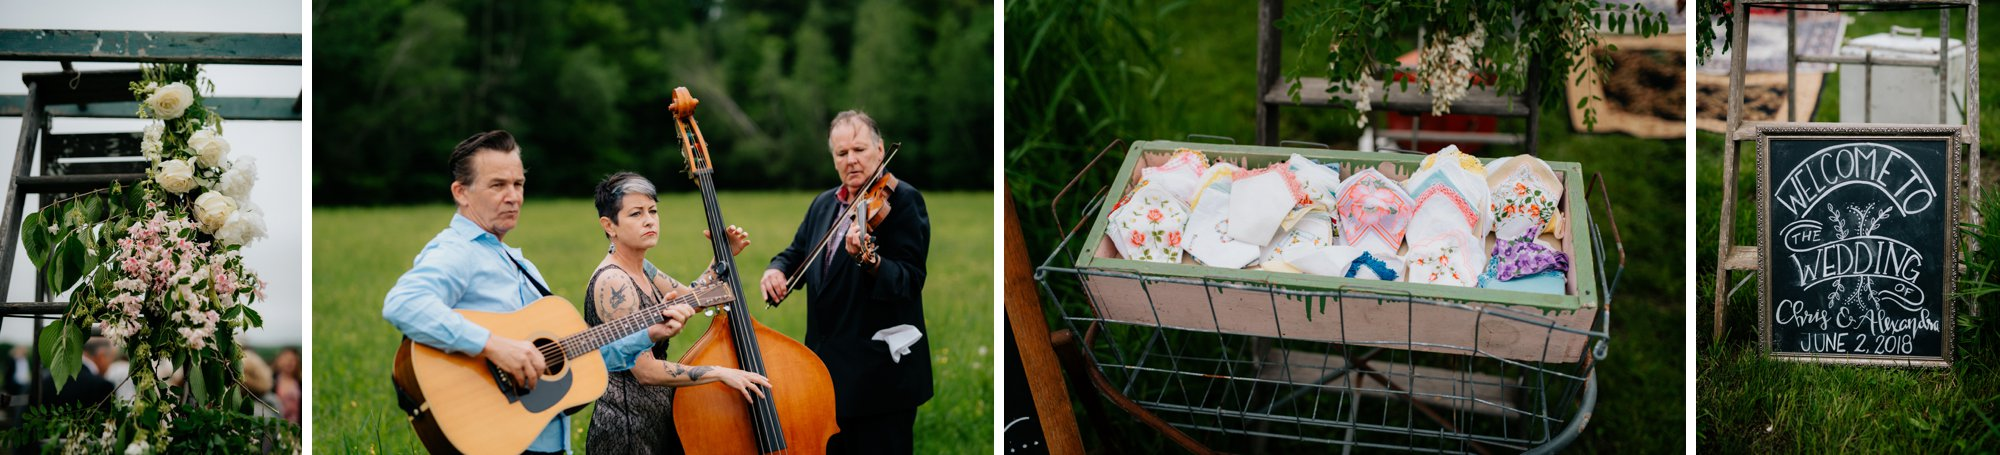 Fiddle Lake Farm Philadelphia Pennsylvania Misty Rustic Wedding with Lush Florals Ceremony Details